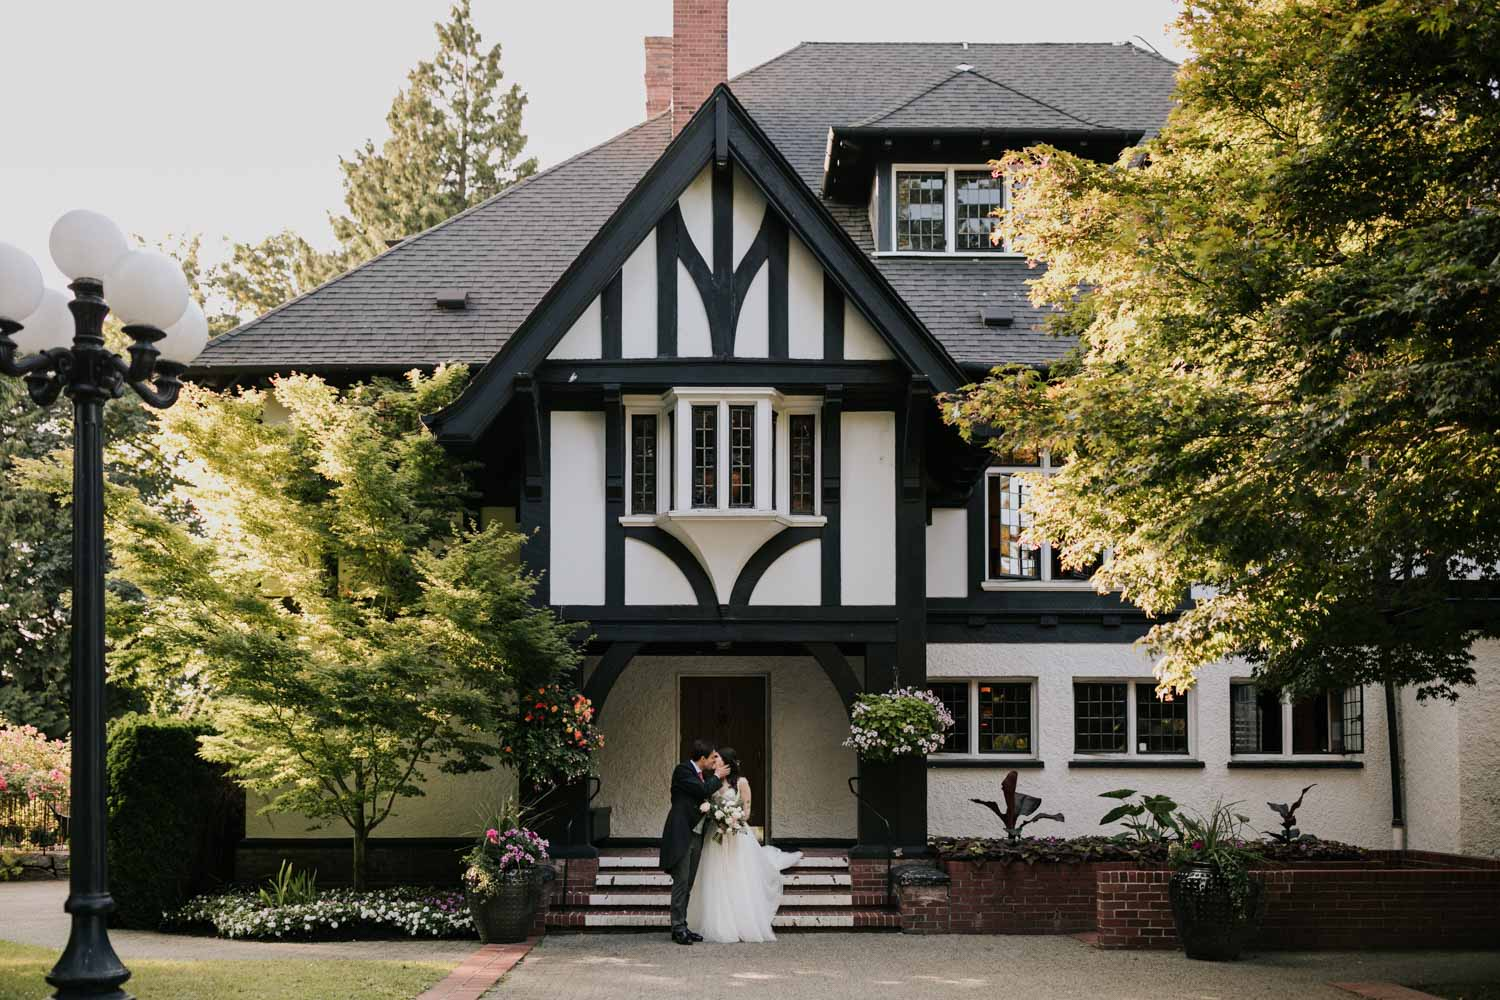 Beautiful bride and groom stand outside front entrance to gorgeous old heritage building and wedding venue in Vancouver, Brock House Restaurant